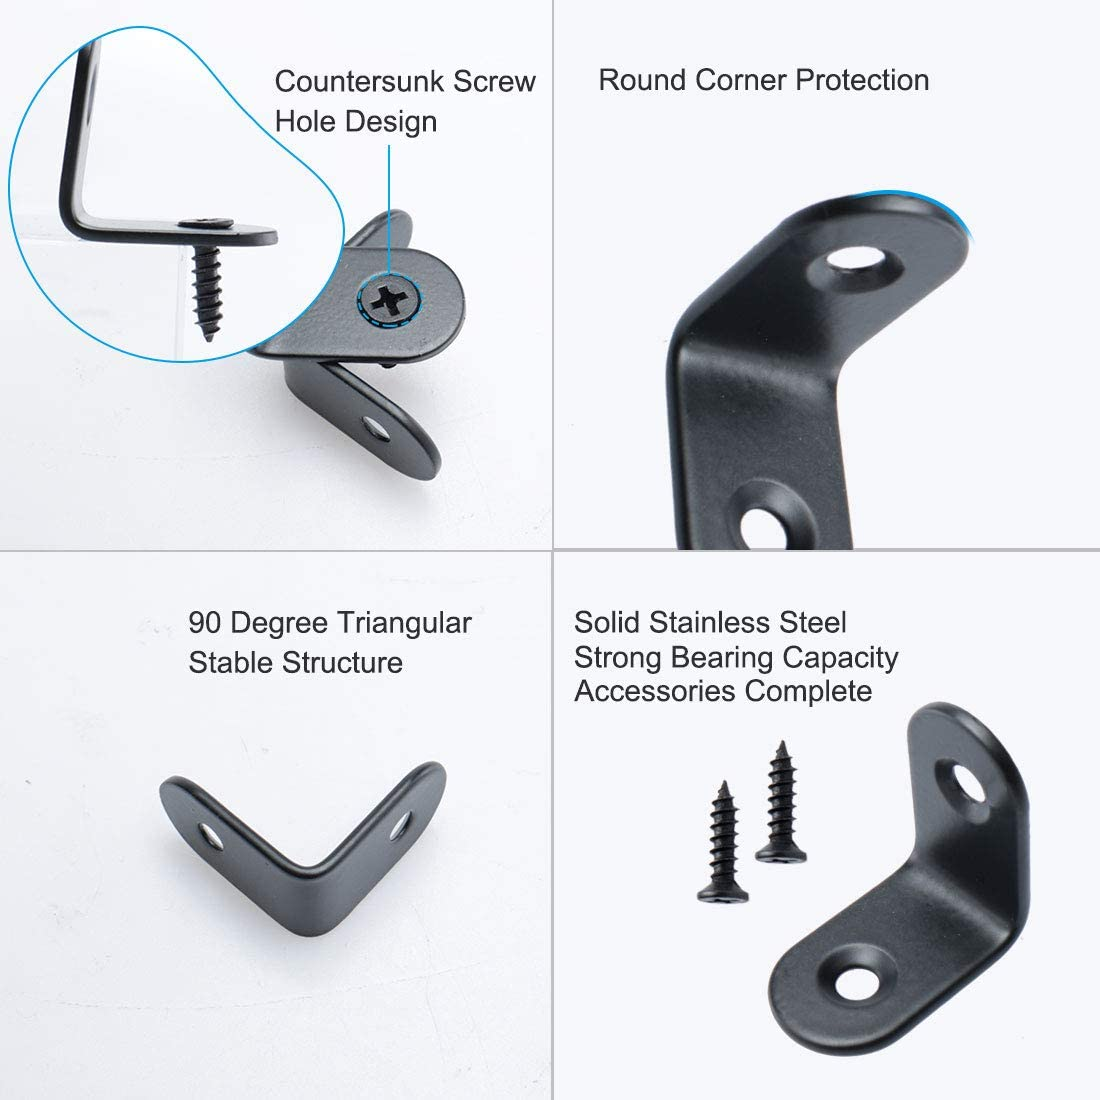 sourcing map 2pcs Angle Bracket Stainless Steel 25x25mm Corner Brace Fastener L Shaped Right Angle Brackets Corner Protector Shelf Support with Screws for Furniture